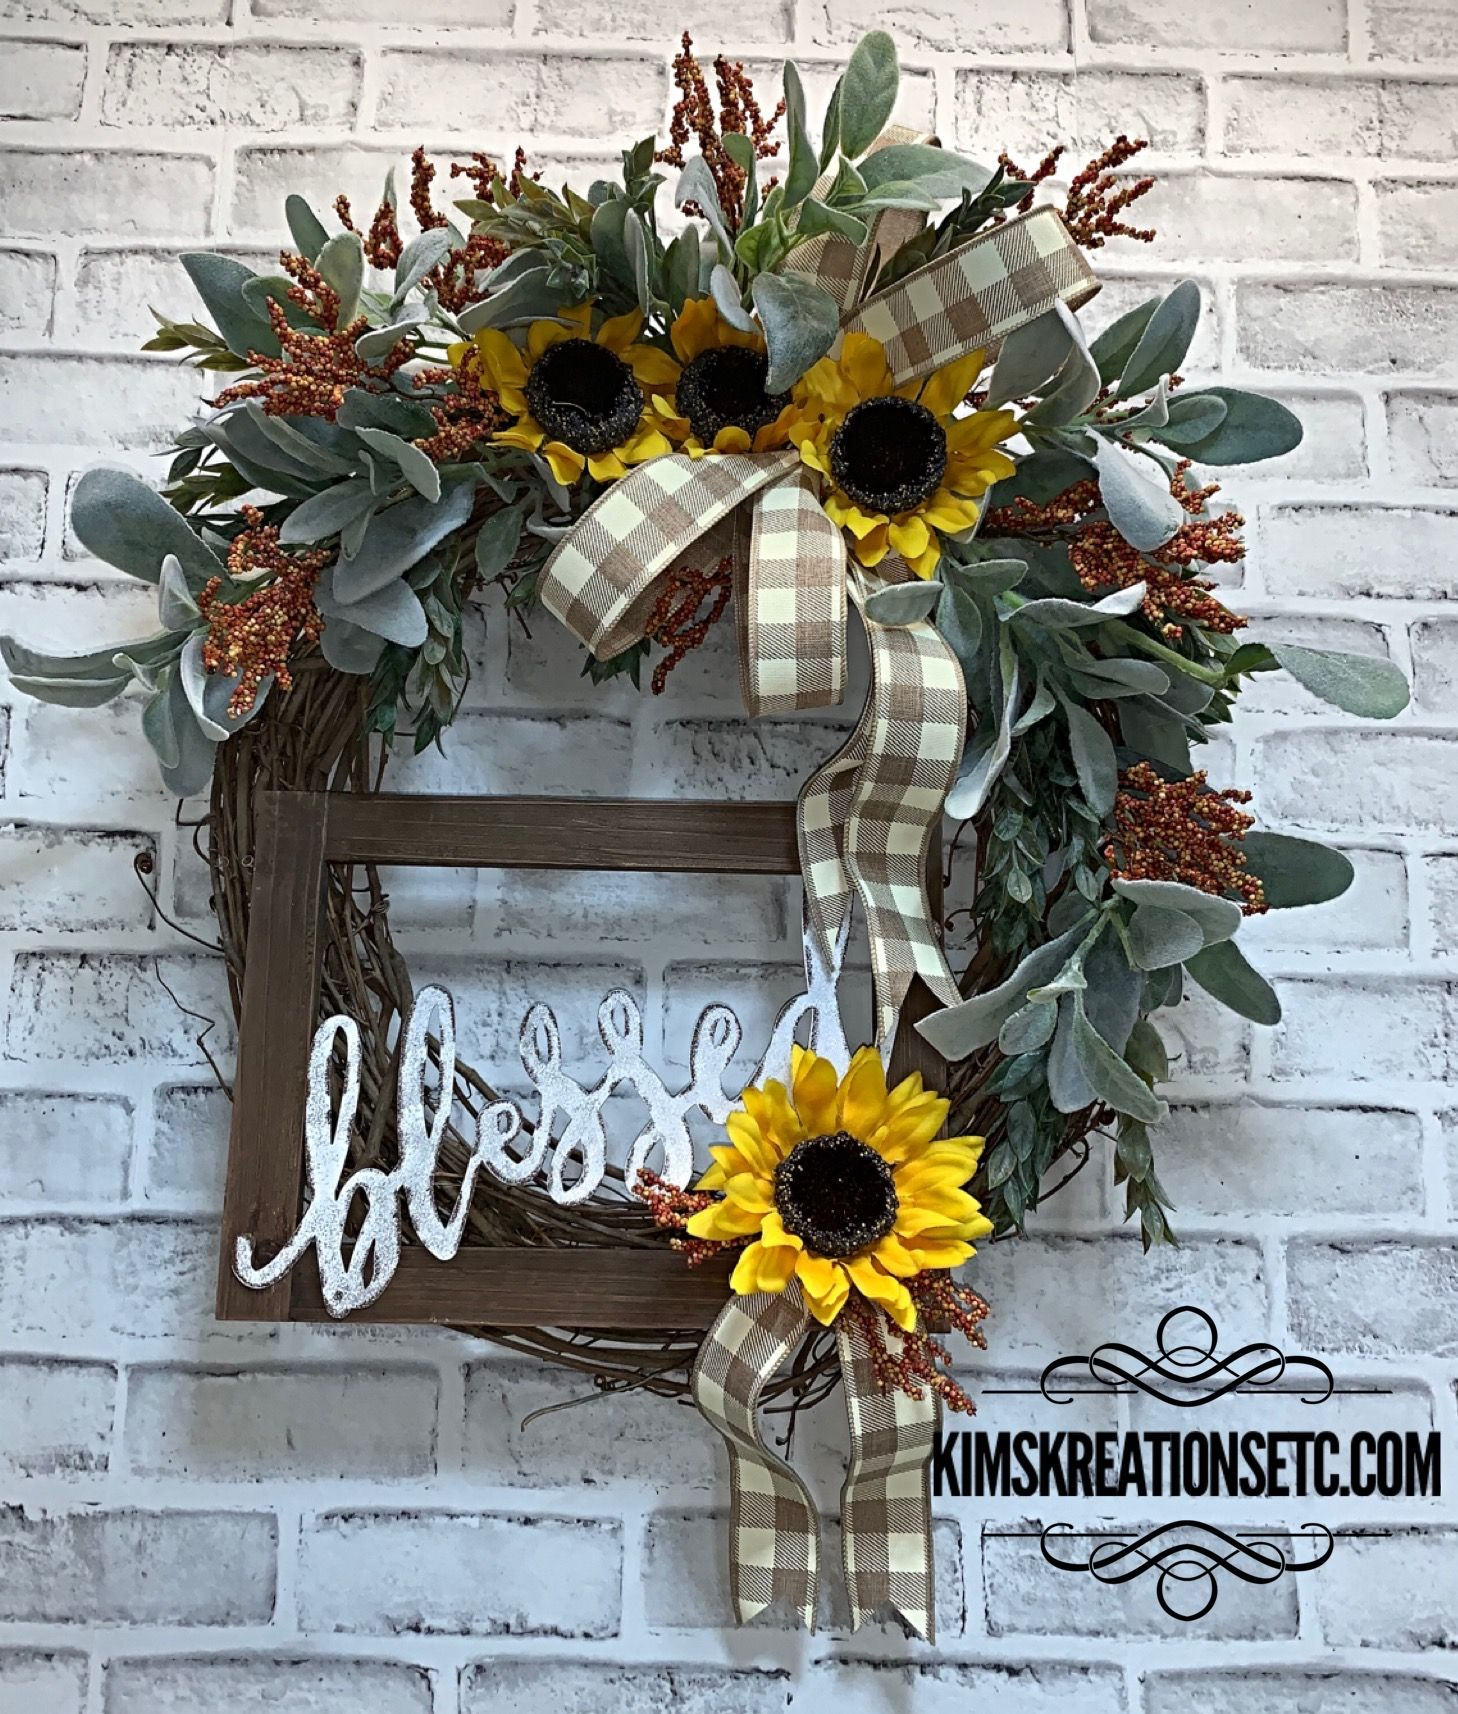 Fall Wreath Free Shipping Blessed Fall Wreath For Front Door Sunflower Wreath Sunflowers Lambs Ear Door Wreath Front Door Wreath Fall Berries Fall Gr In 2020 Fall Grapevine Wreaths Wreaths For